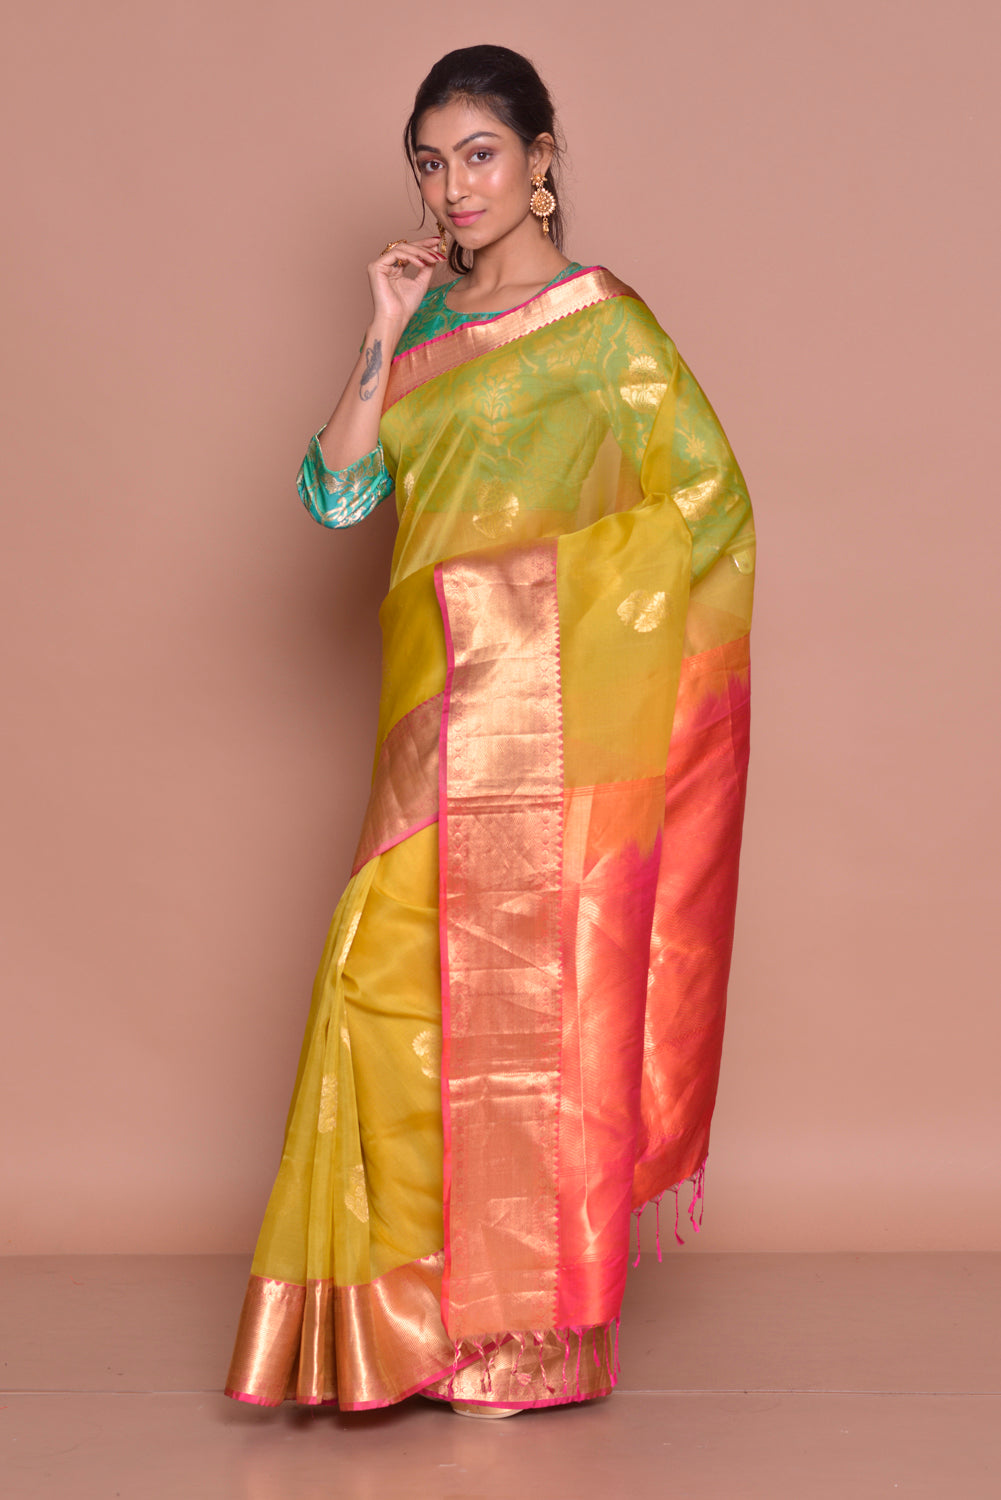 Shop yellow kora Banarasi saree online in USA with red zari pallu and green Banarasi sari blouse. Set ethnic fashion goals with exquisite designer sarees with blouse, Banarasi sarees, Kanchipuram saris from Pure Elegance Indian luxury clothing store in USA.-side